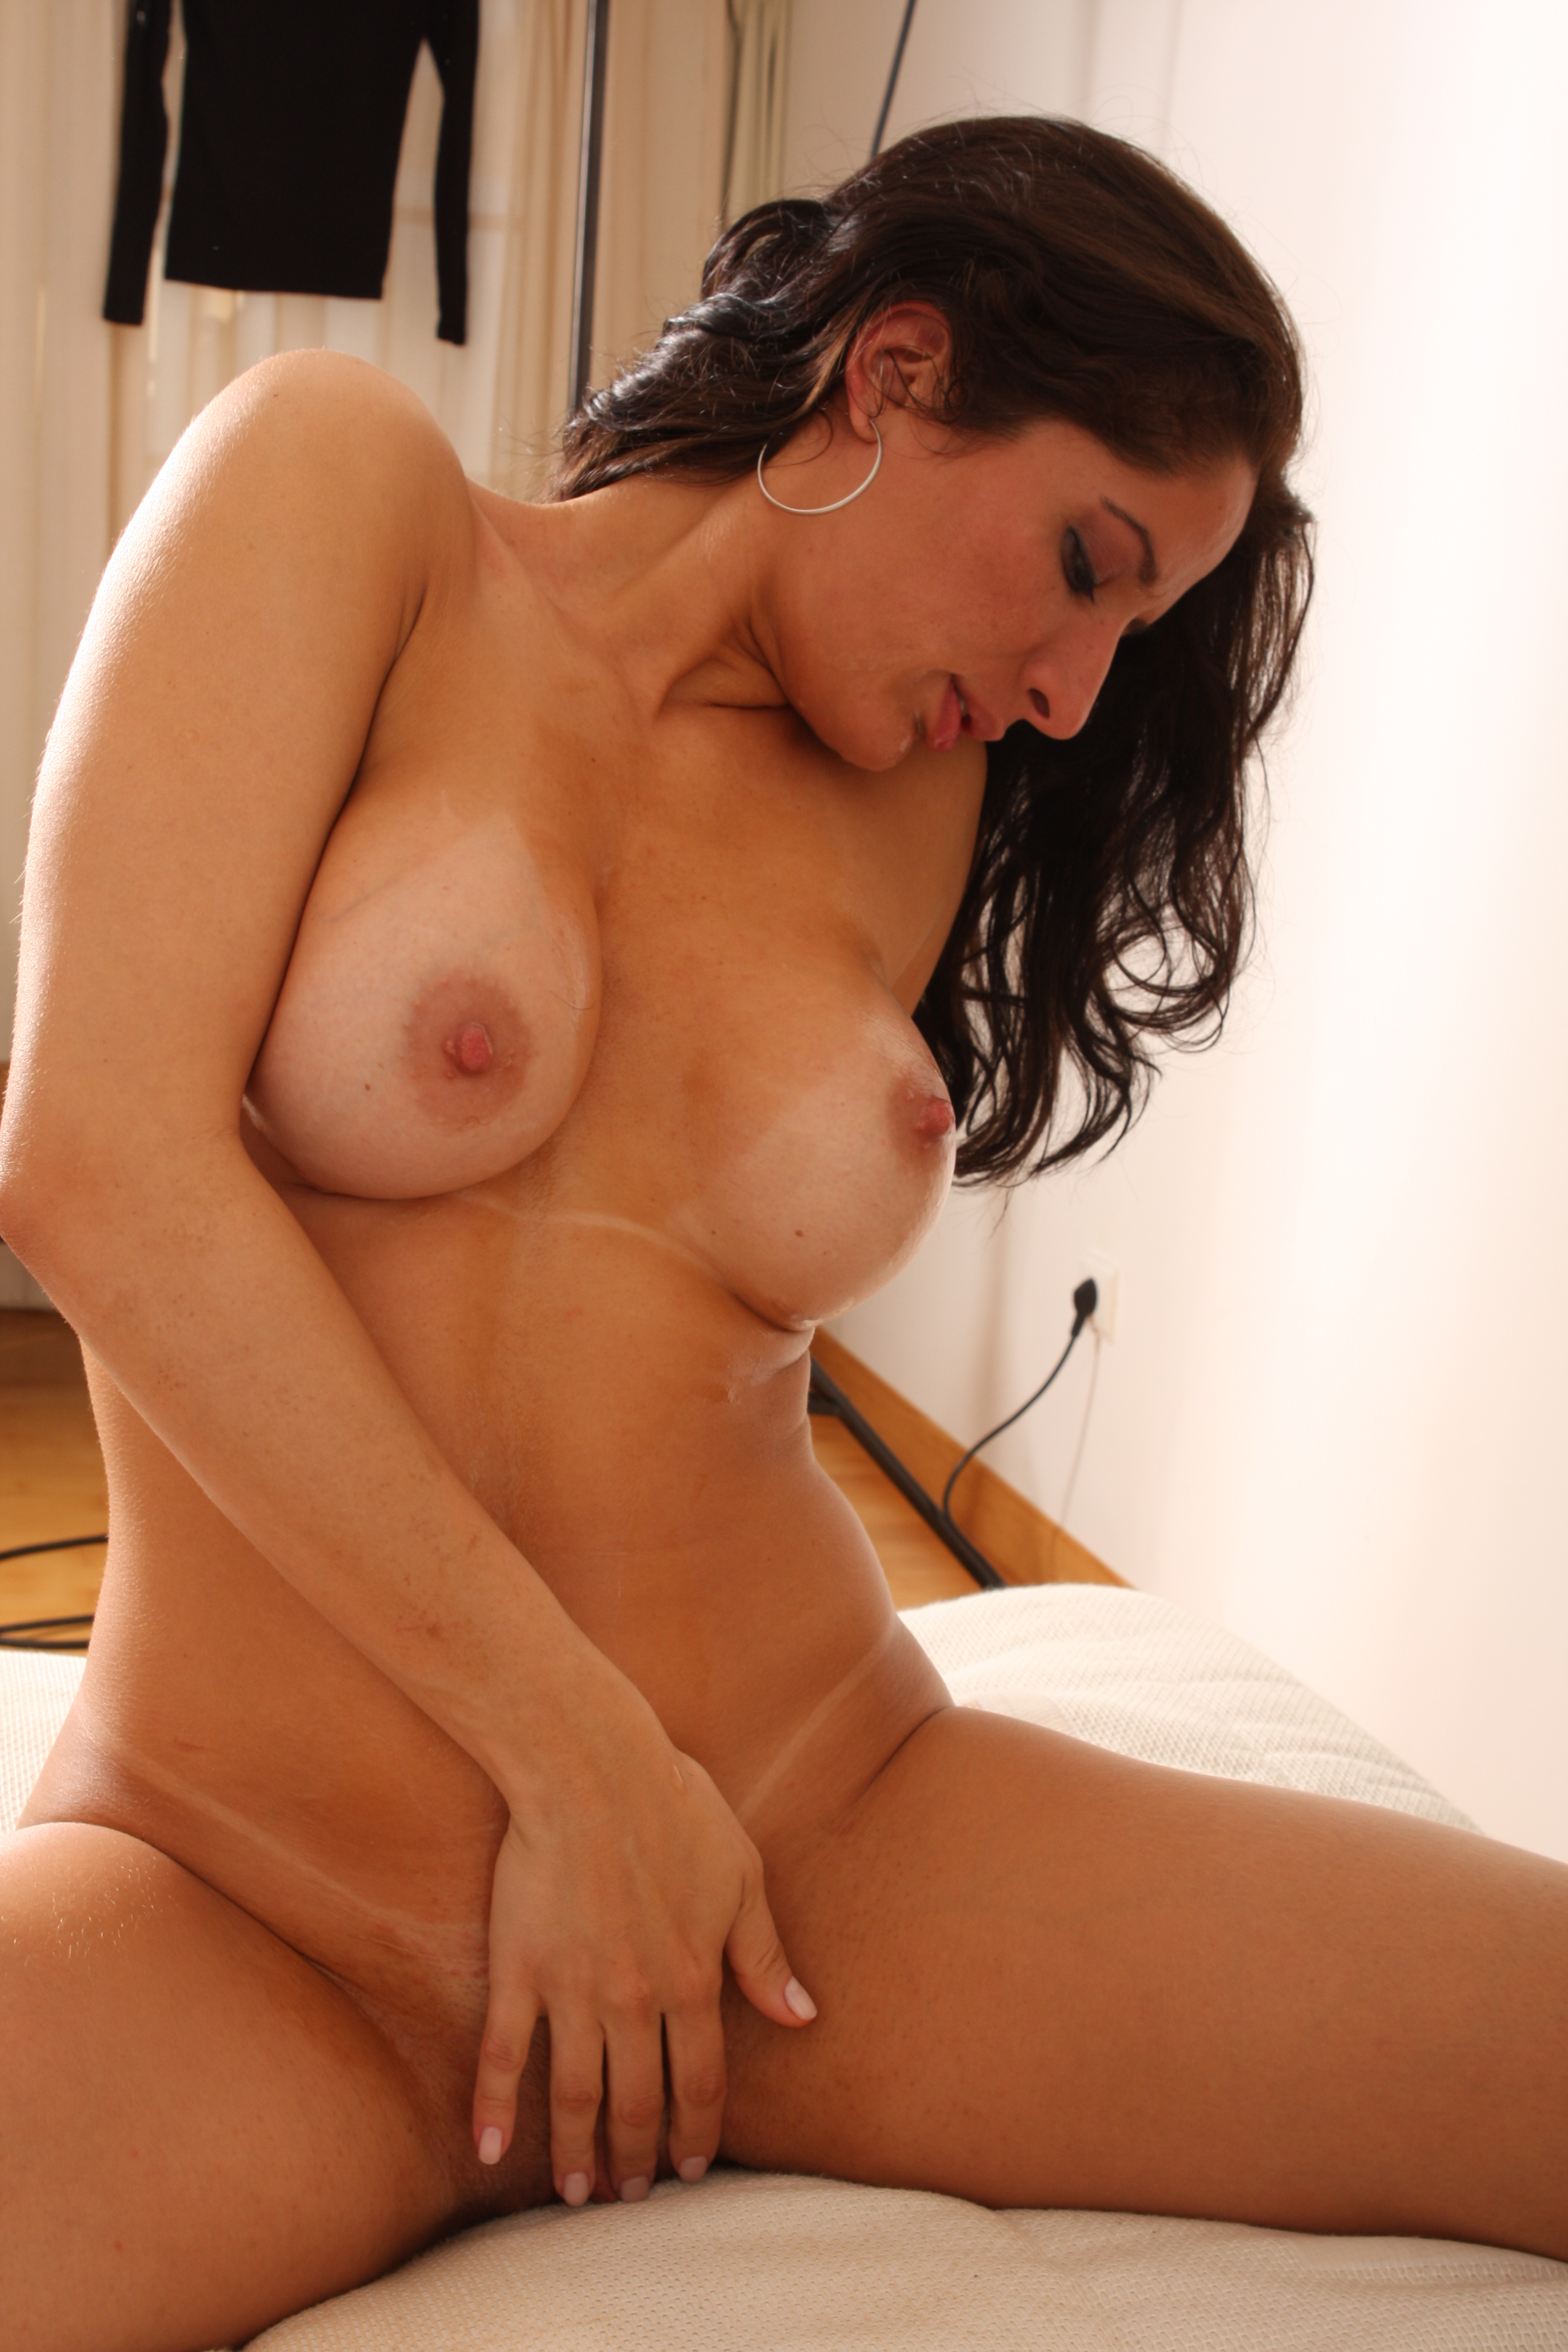 Images Of Get Instant Access All Our Fullhd Videos Join Now